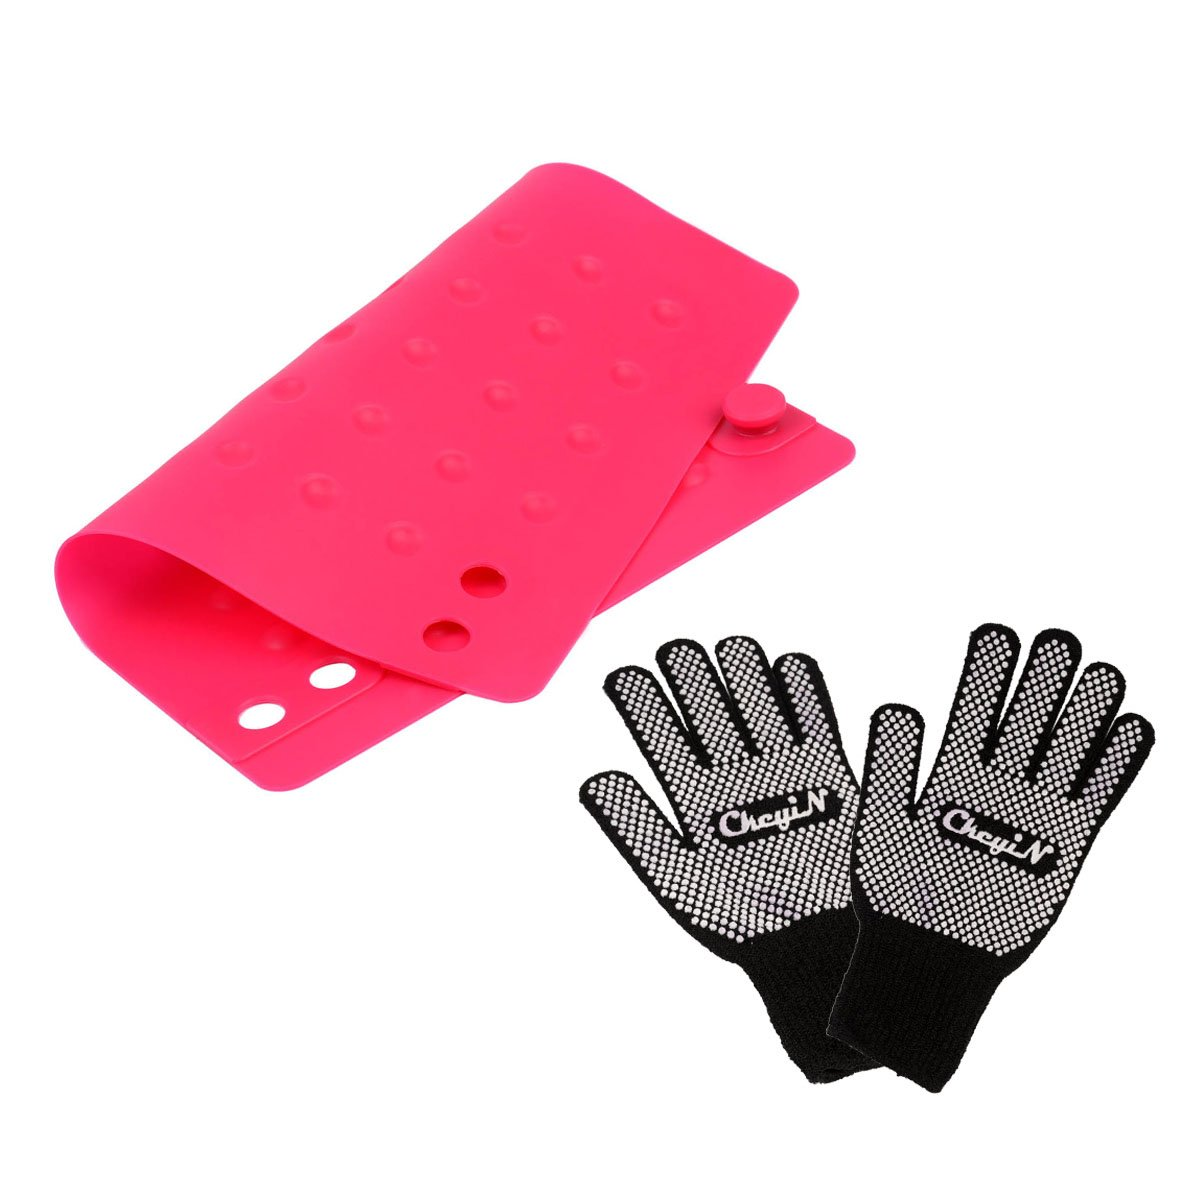 CkeyiN® 3pcs Silicone No-Slip Foldable Heat-proof Mat Curling Wand and Knitting Cotton Heat-resistant Gloves for Hot Styling Tools